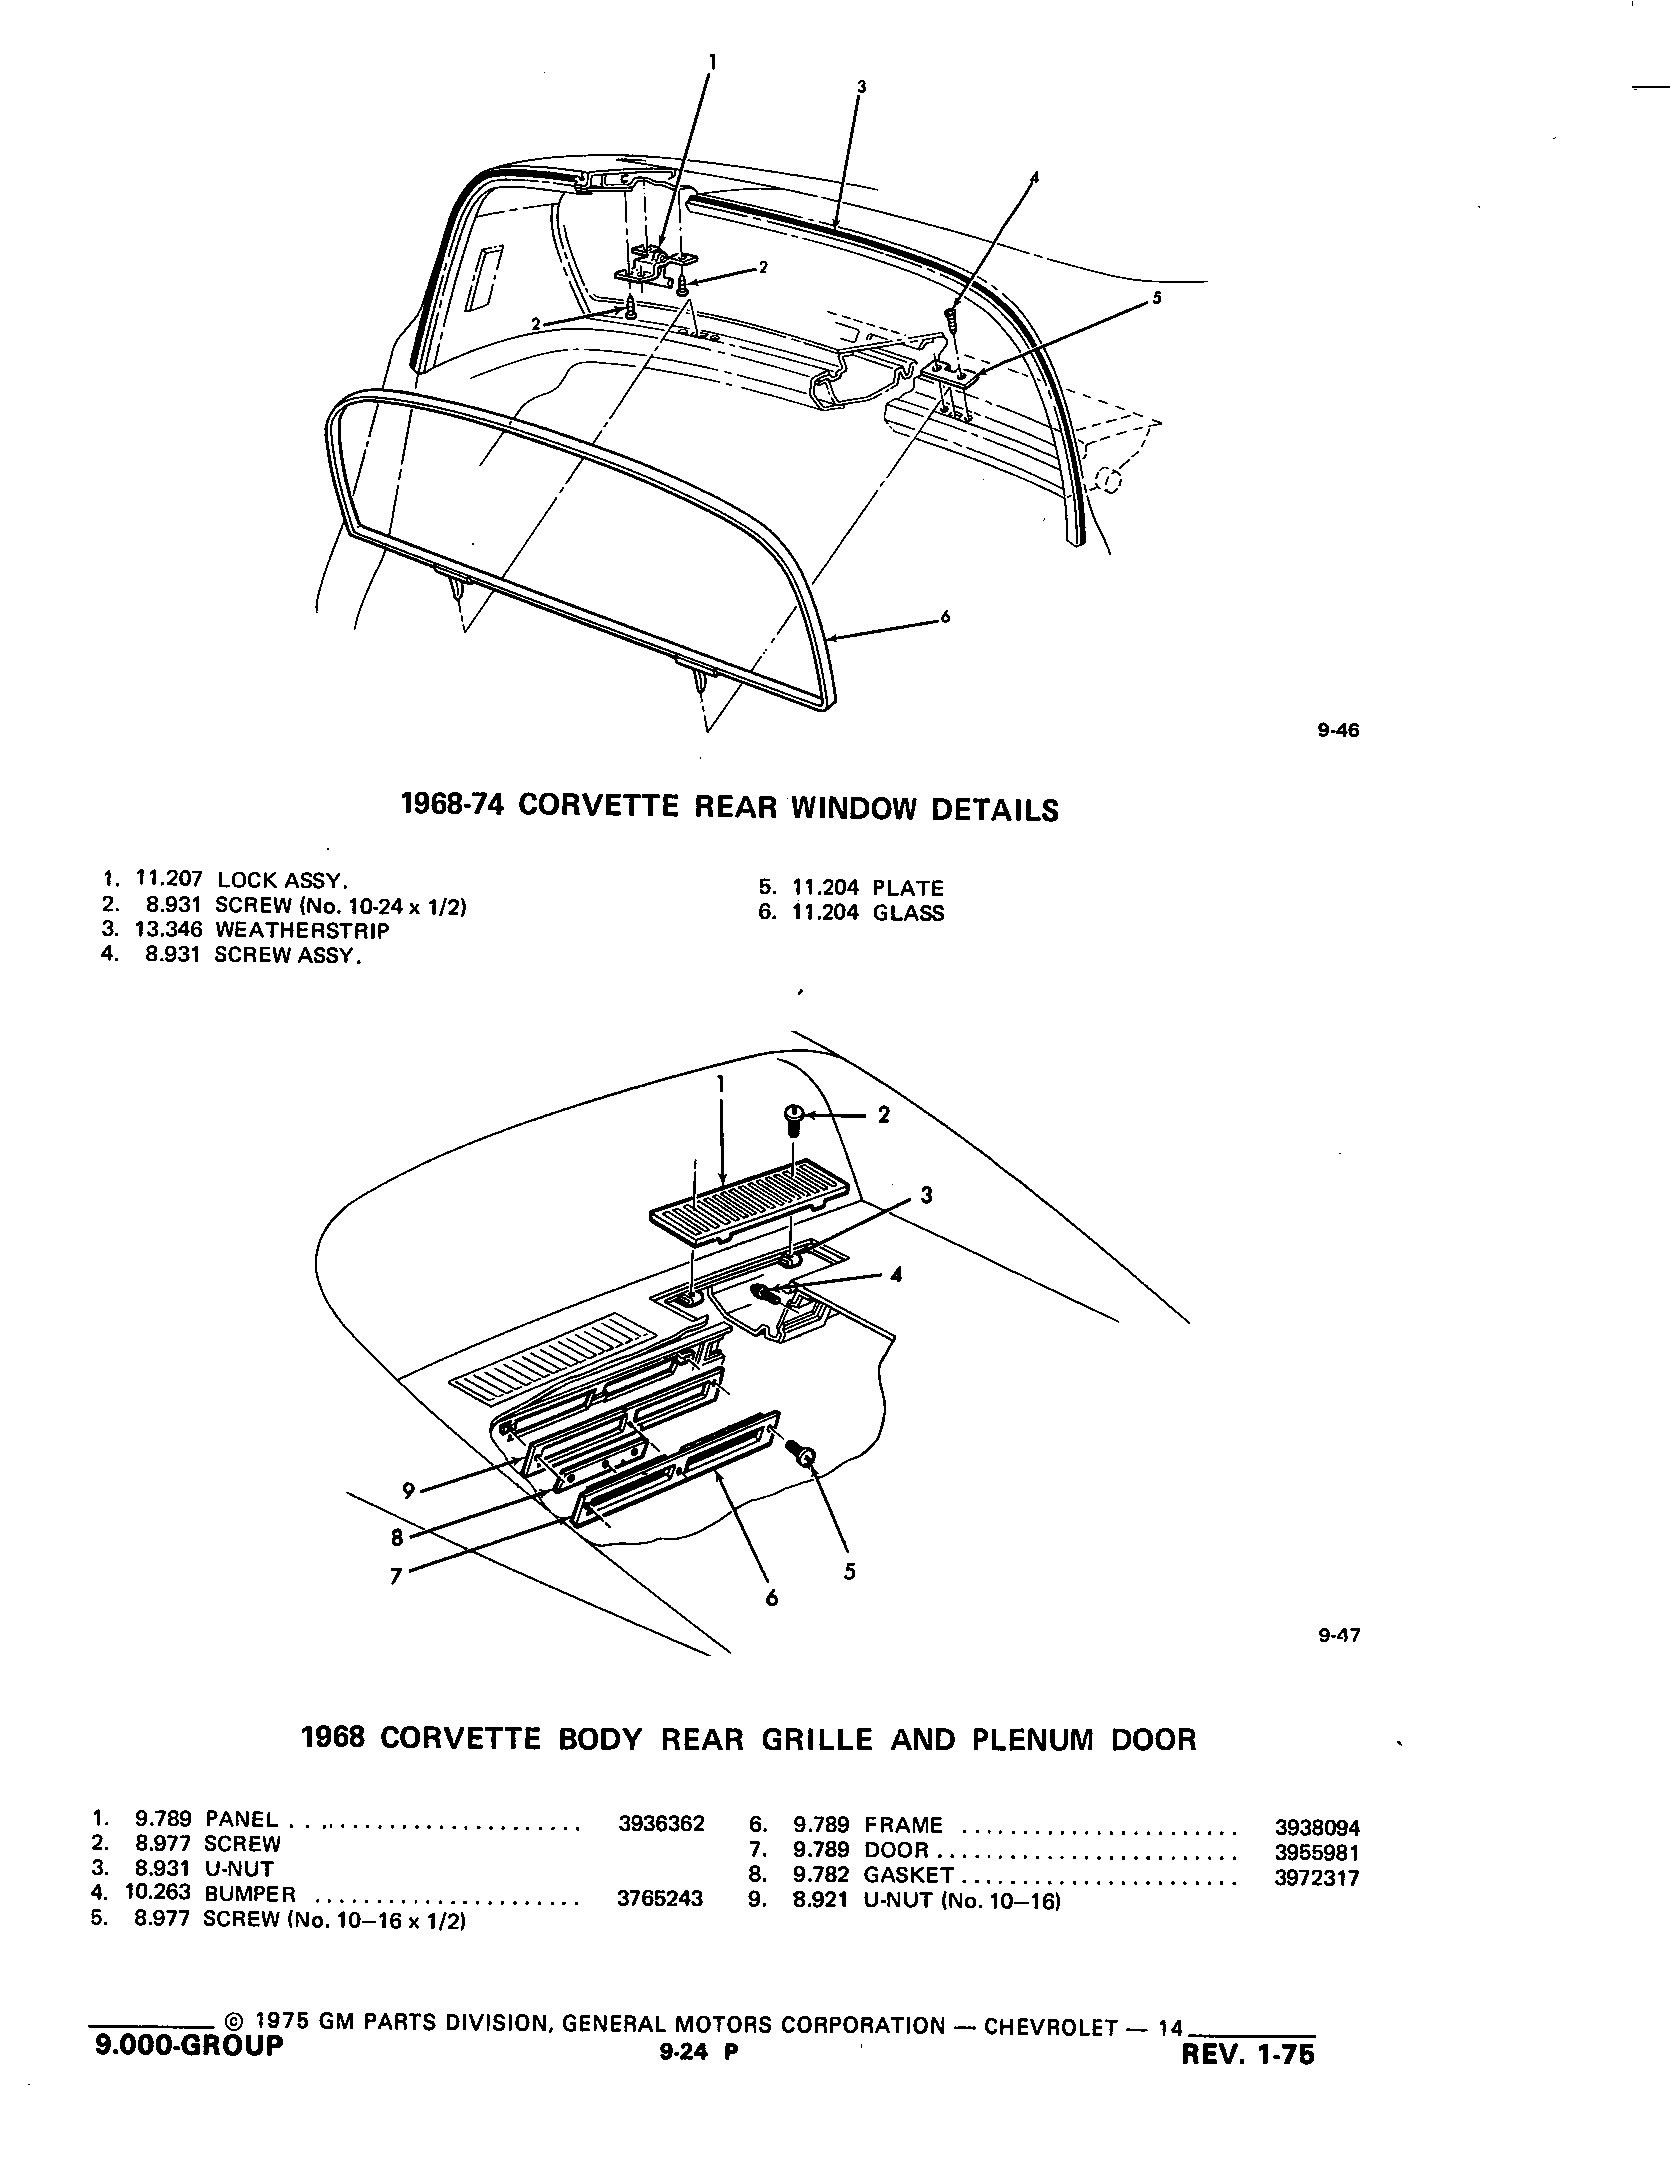 Flaming River Steering Column Wiring Diagram Chevy Schematic Diagrams Ididit For Sale C10 On Ii Nova Gm Ignition